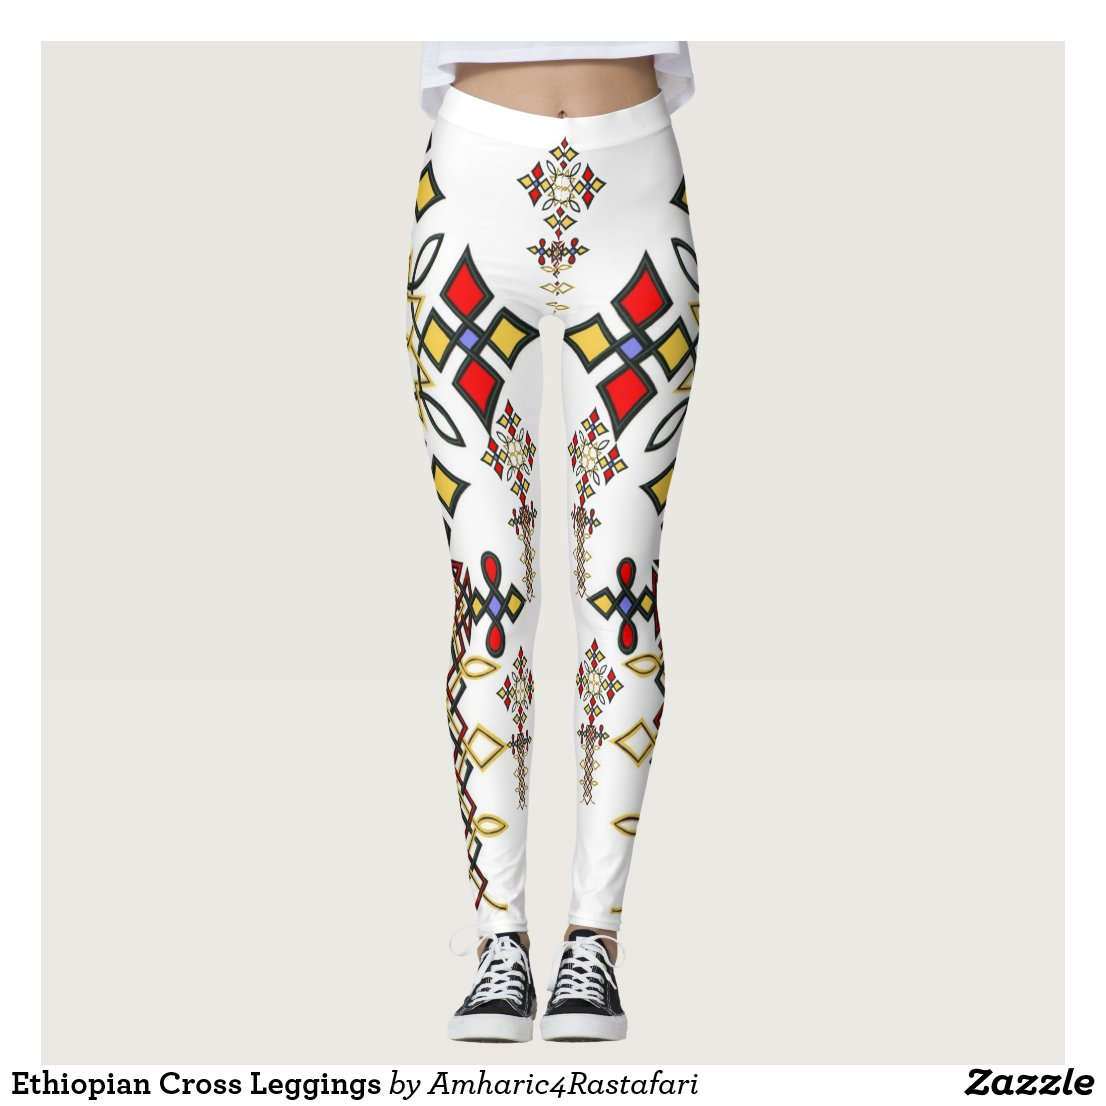 Ethiopian Cross Leggings